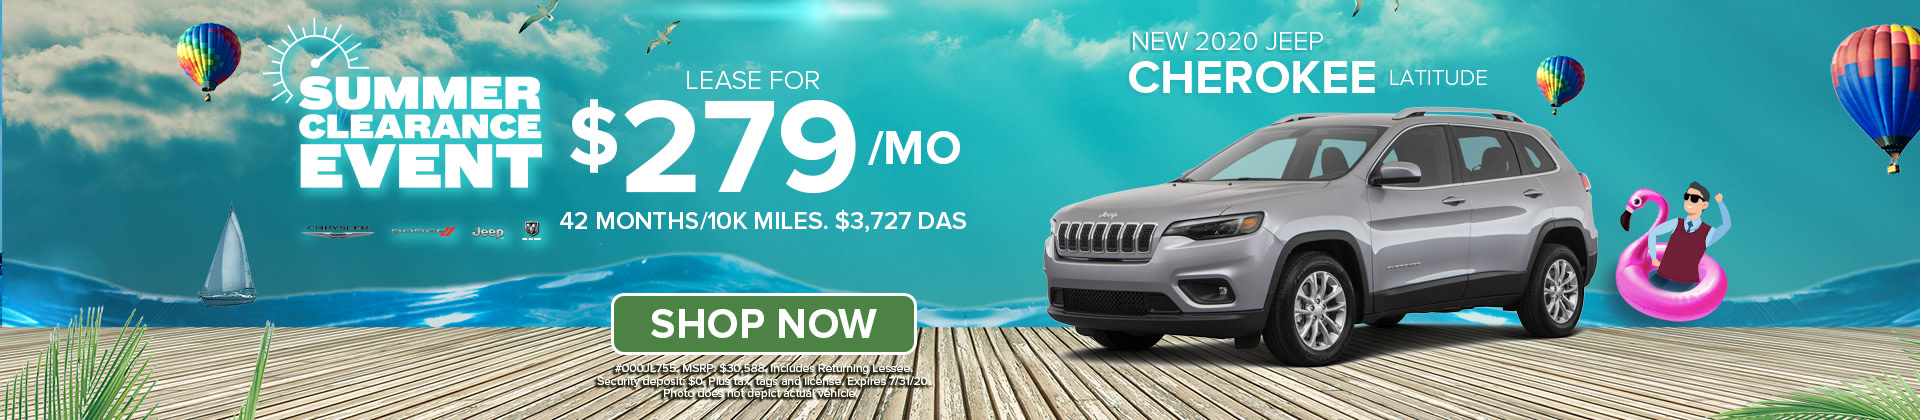 Lease a 2020 Jeep Cherokee